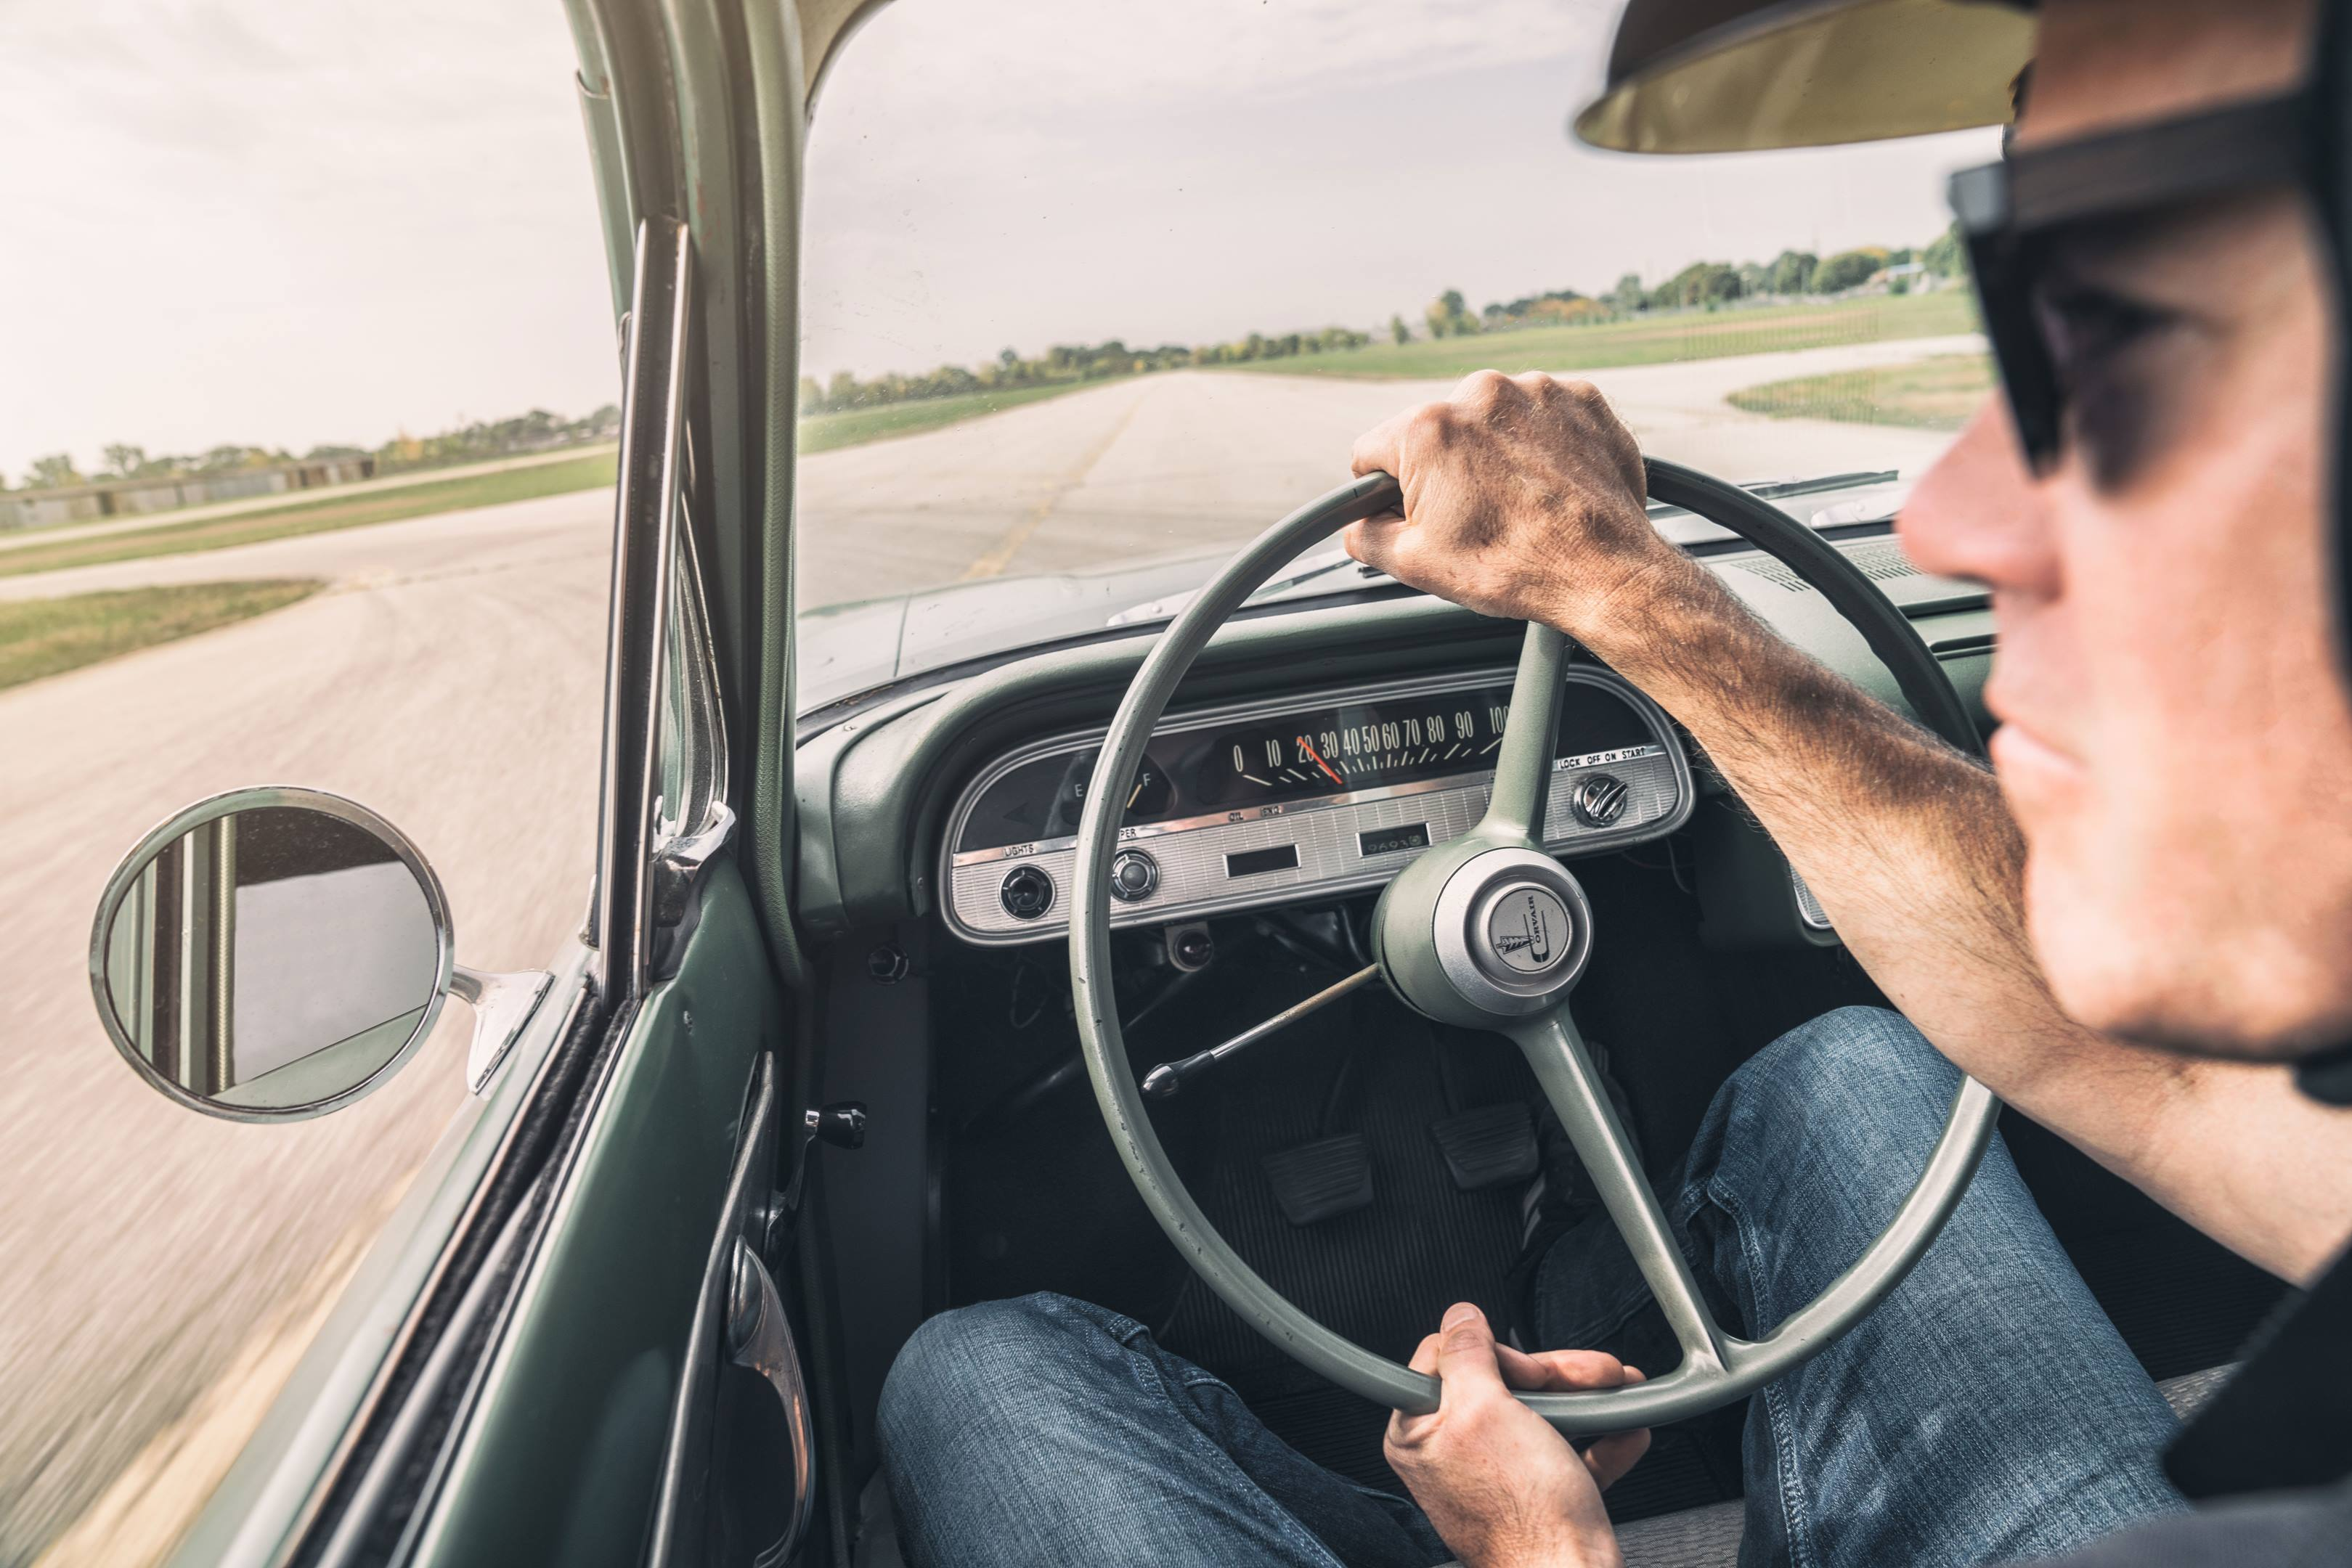 behind the wheel of a 1960 Corvair